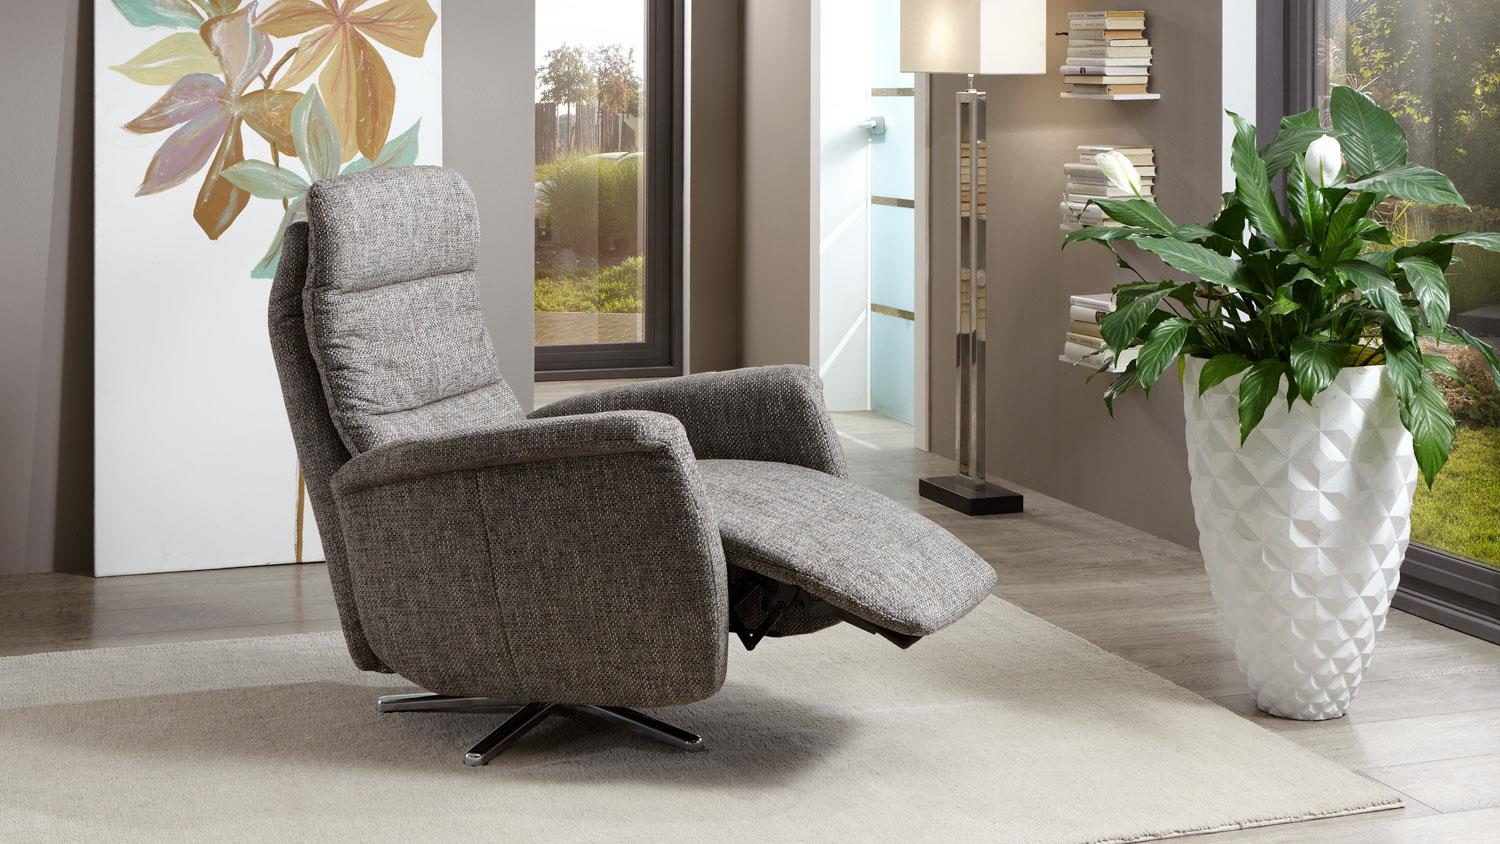 TV-Sessel MYSTYLE Relaxsessel Stoff nougat Funktion